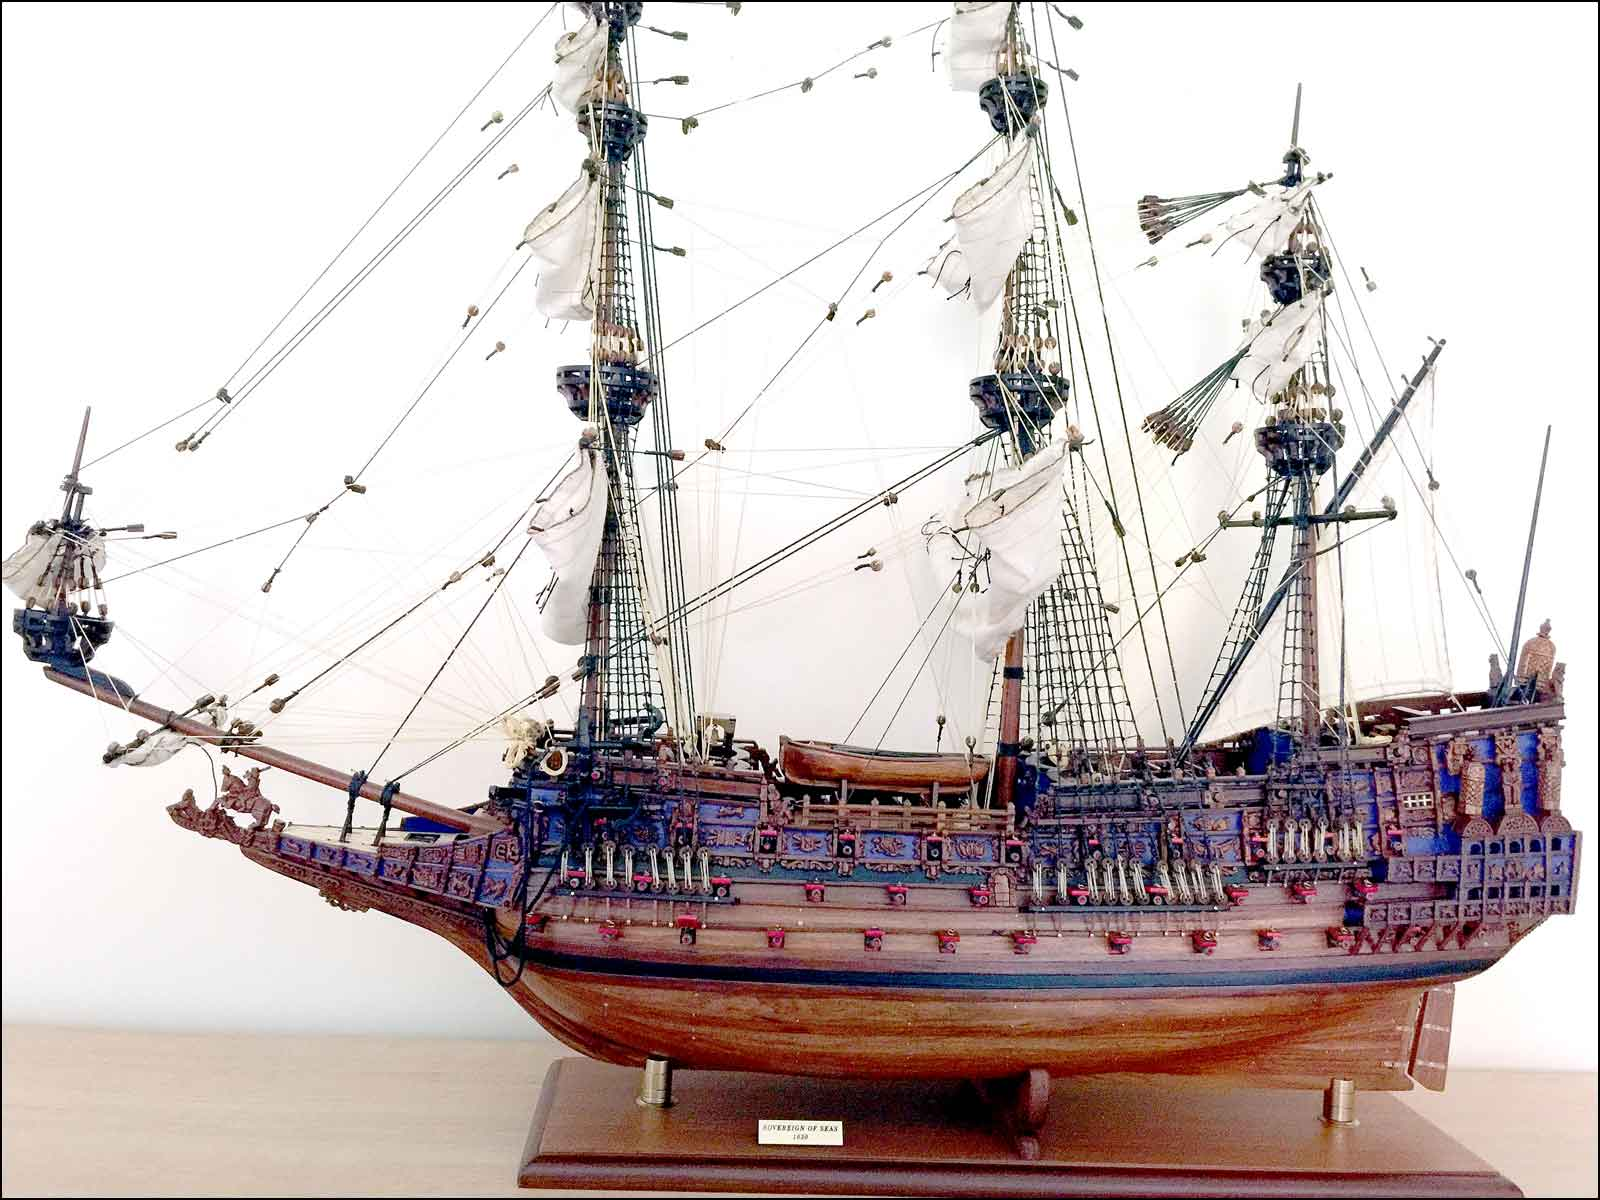 Sovereign of Seas Ship Model (1638 GB)|Large Size